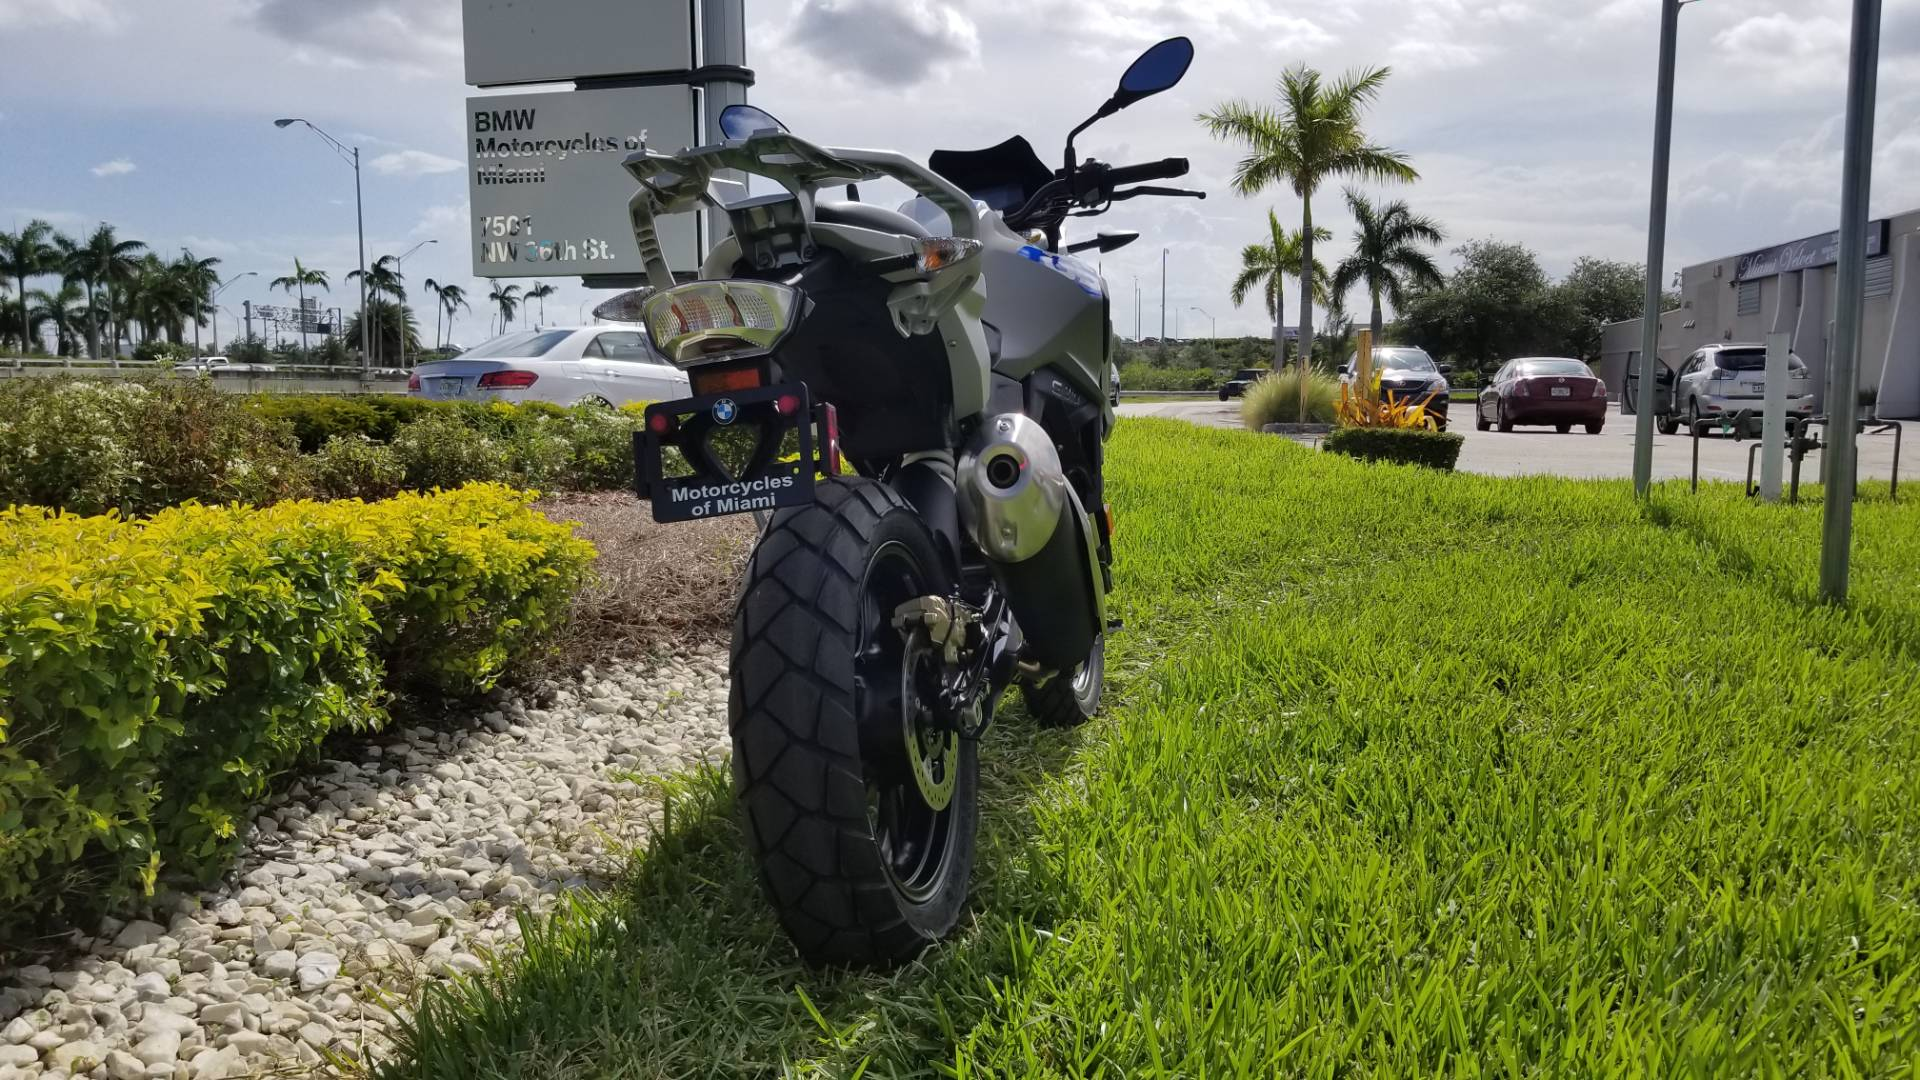 New 2019 BMW G 310 GS for sale, BMW G 310GS for sale, BMW Motorcycle G310GS, new BMW 310, Dual, BMW. BMW Motorcycles of Miami, Motorcycles of Miami, Motorcycles Miami, New Motorcycles, Used Motorcycles, pre-owned. #BMWMotorcyclesOfMiami #MotorcyclesOfMiami - Photo 17